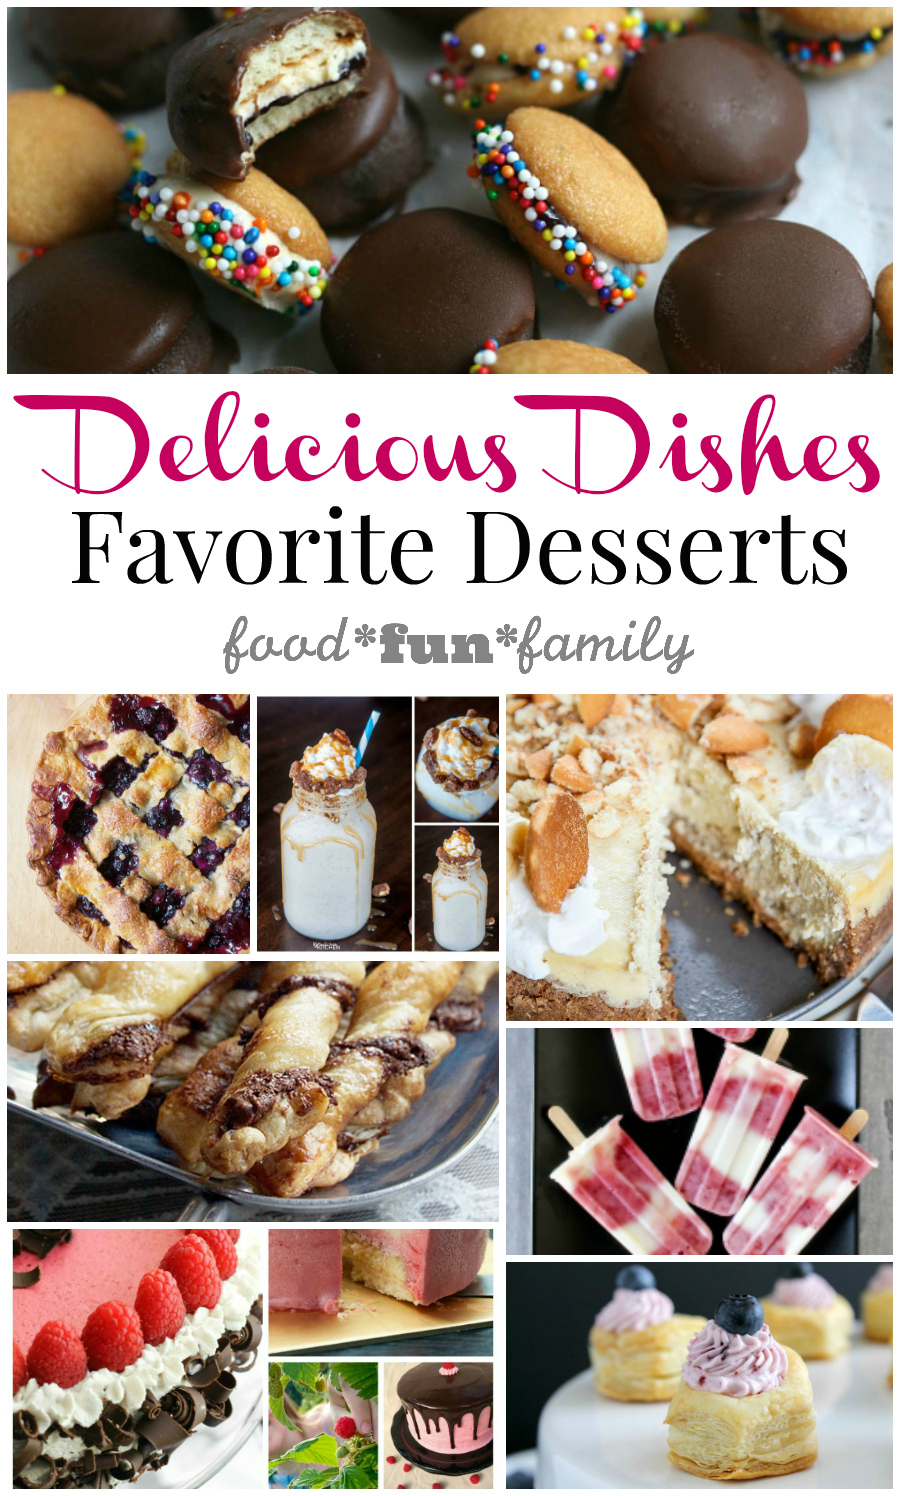 Party Desert Recipes: Delicious Dishes Recipe Party #30 {Favorite Summer Dessert